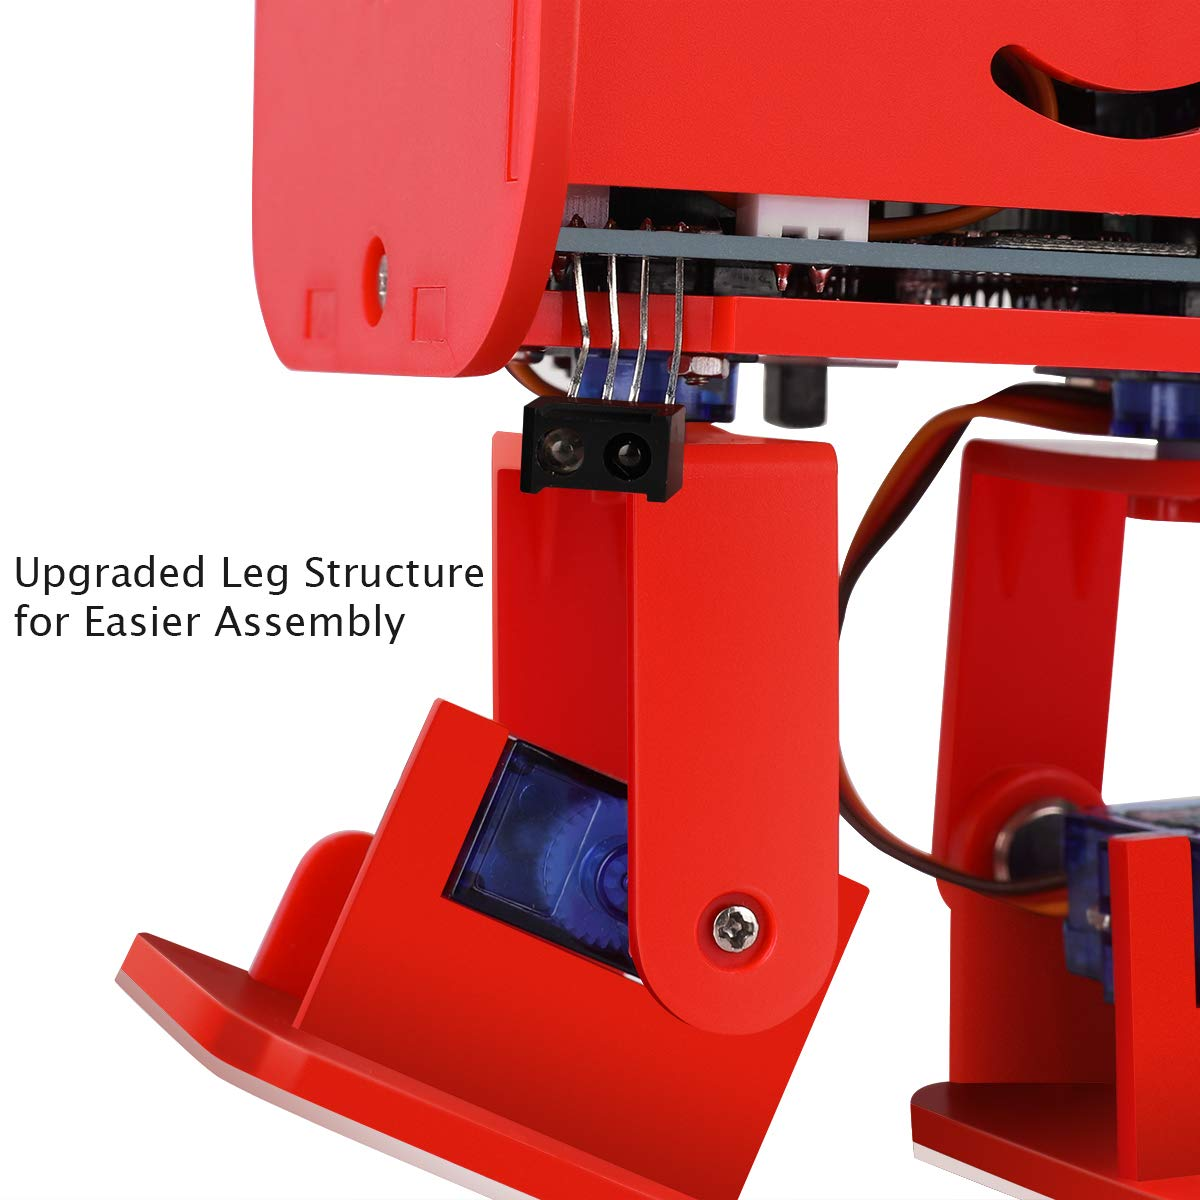 ELEGOO Penguin Bot Biped Robot Kit for Arduino Project with Assembling Tutorial,STEM Kit for Hobbyists, STEM Toys for Kids and Adults, Red Version by ELEGOO (Image #3)